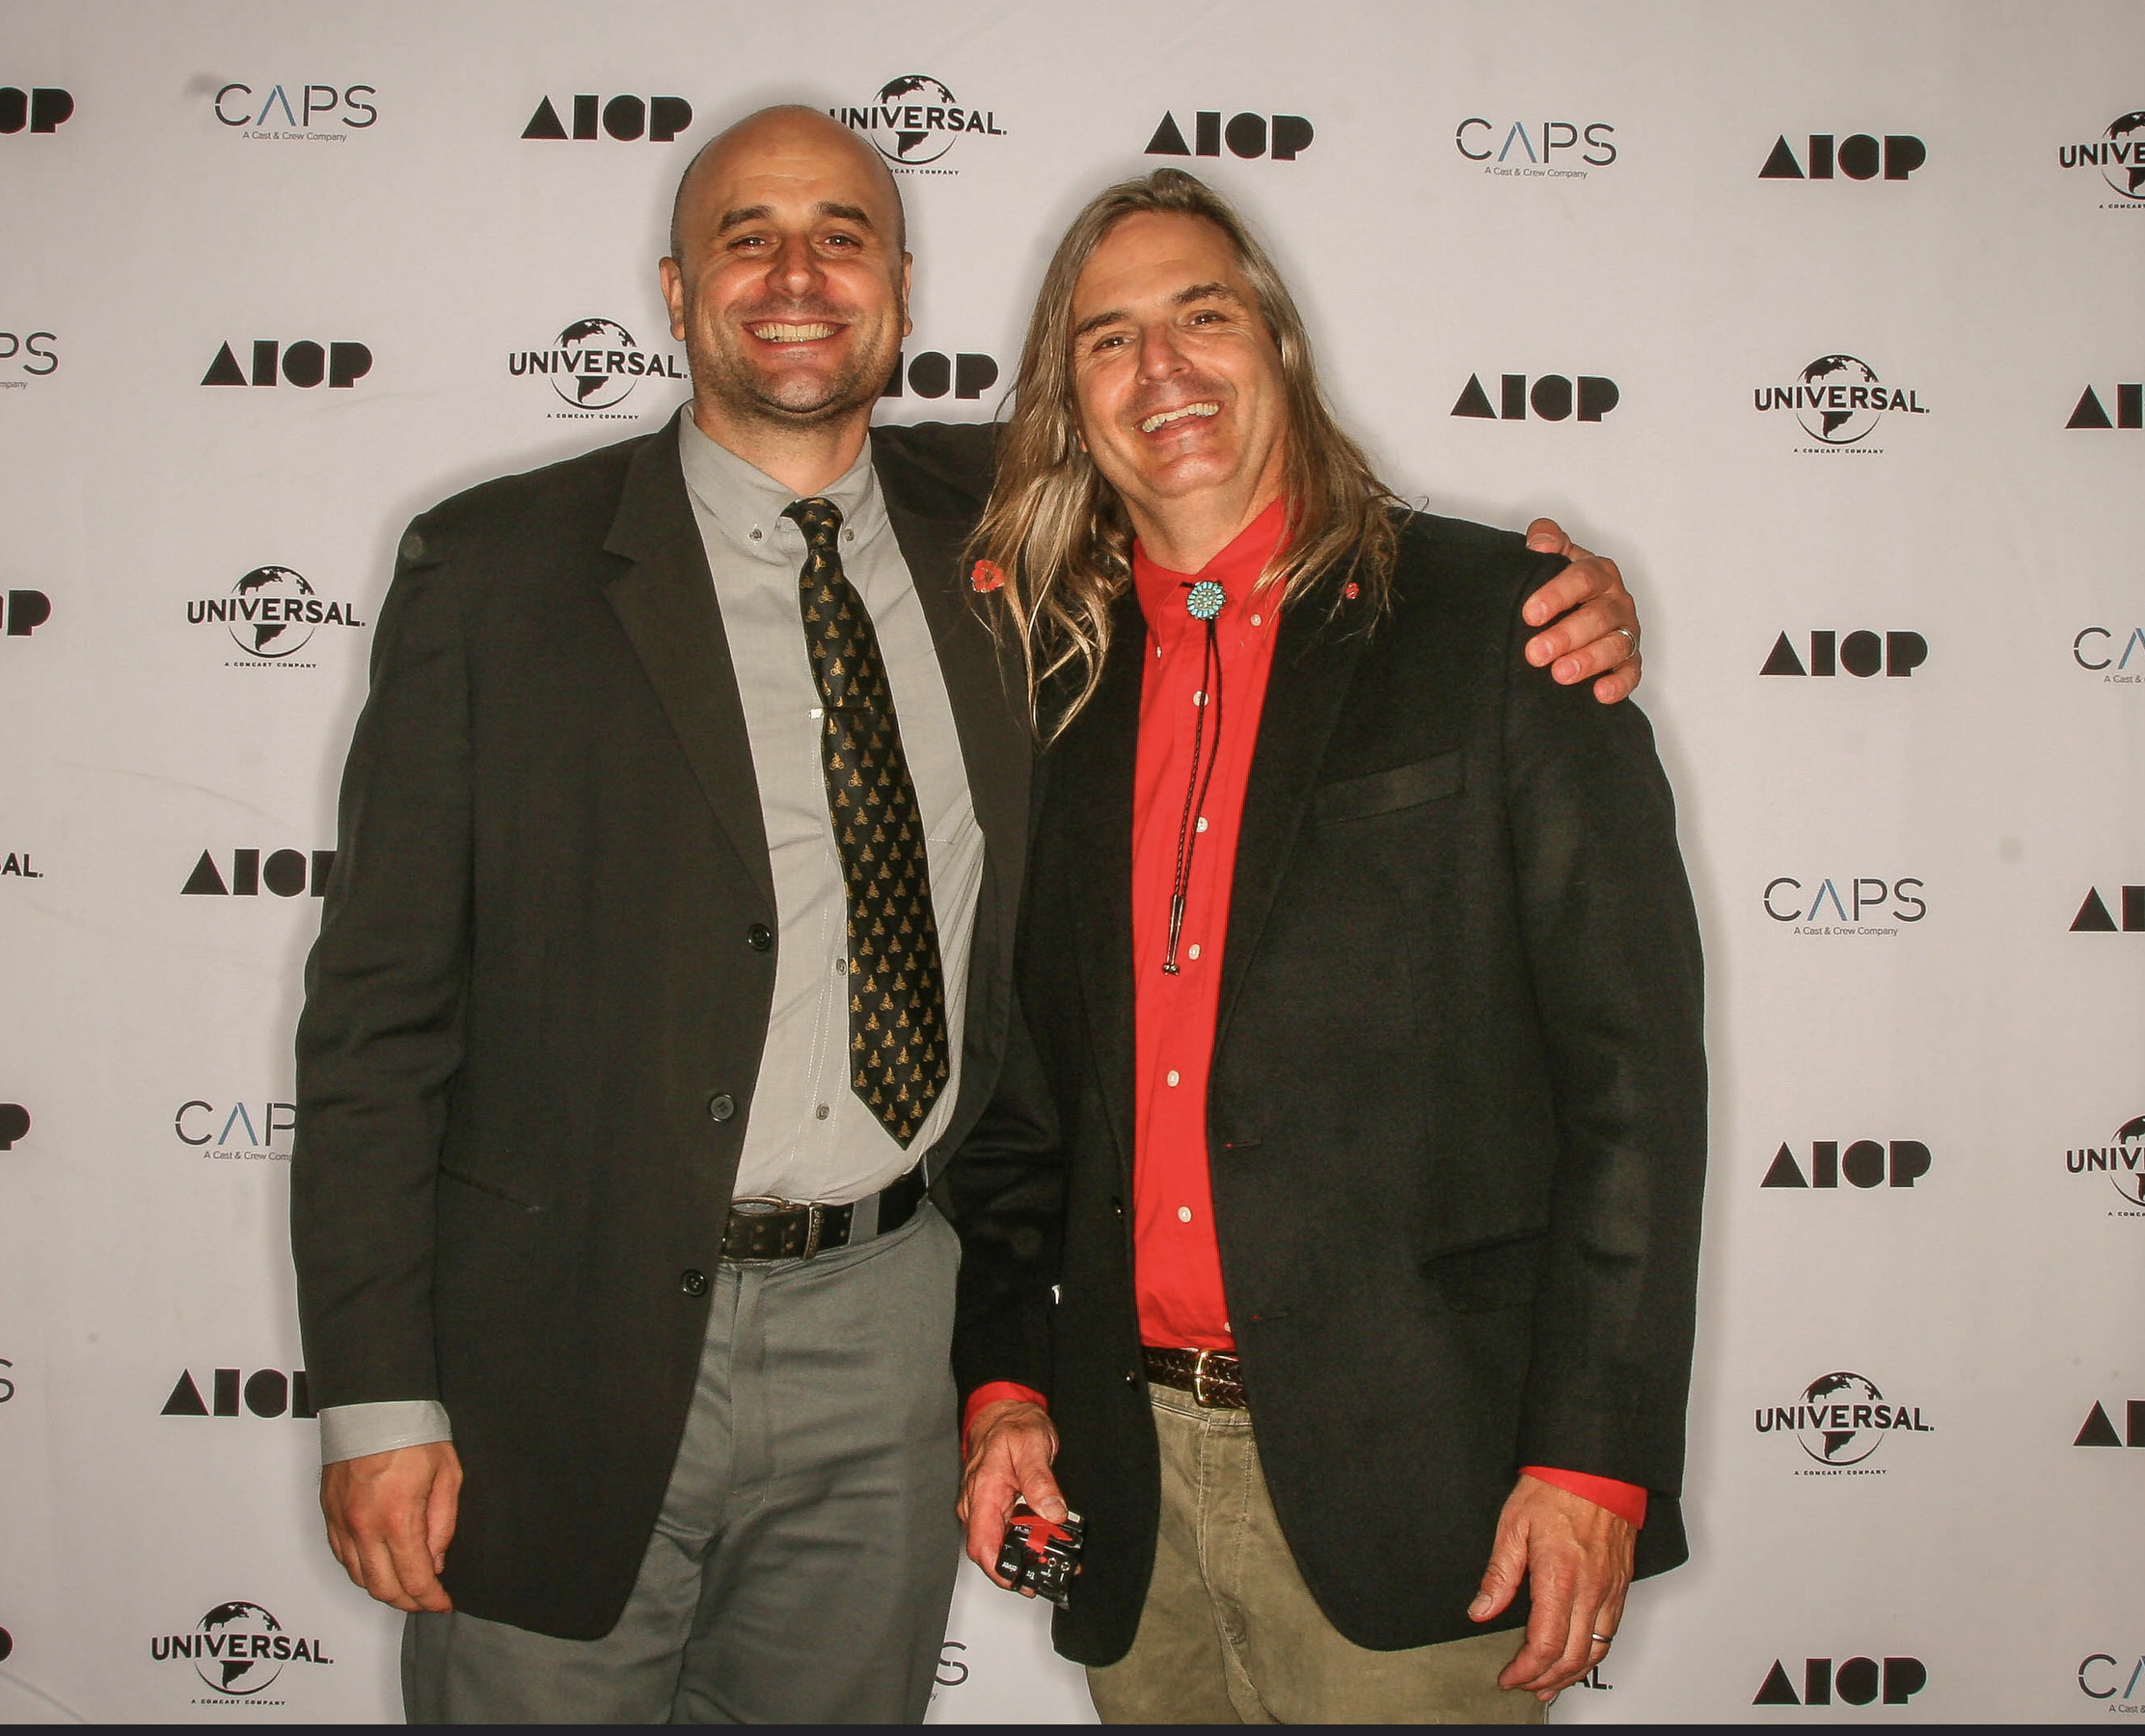 AICP MN Vice President Ace Allgood hits the Red carpet.